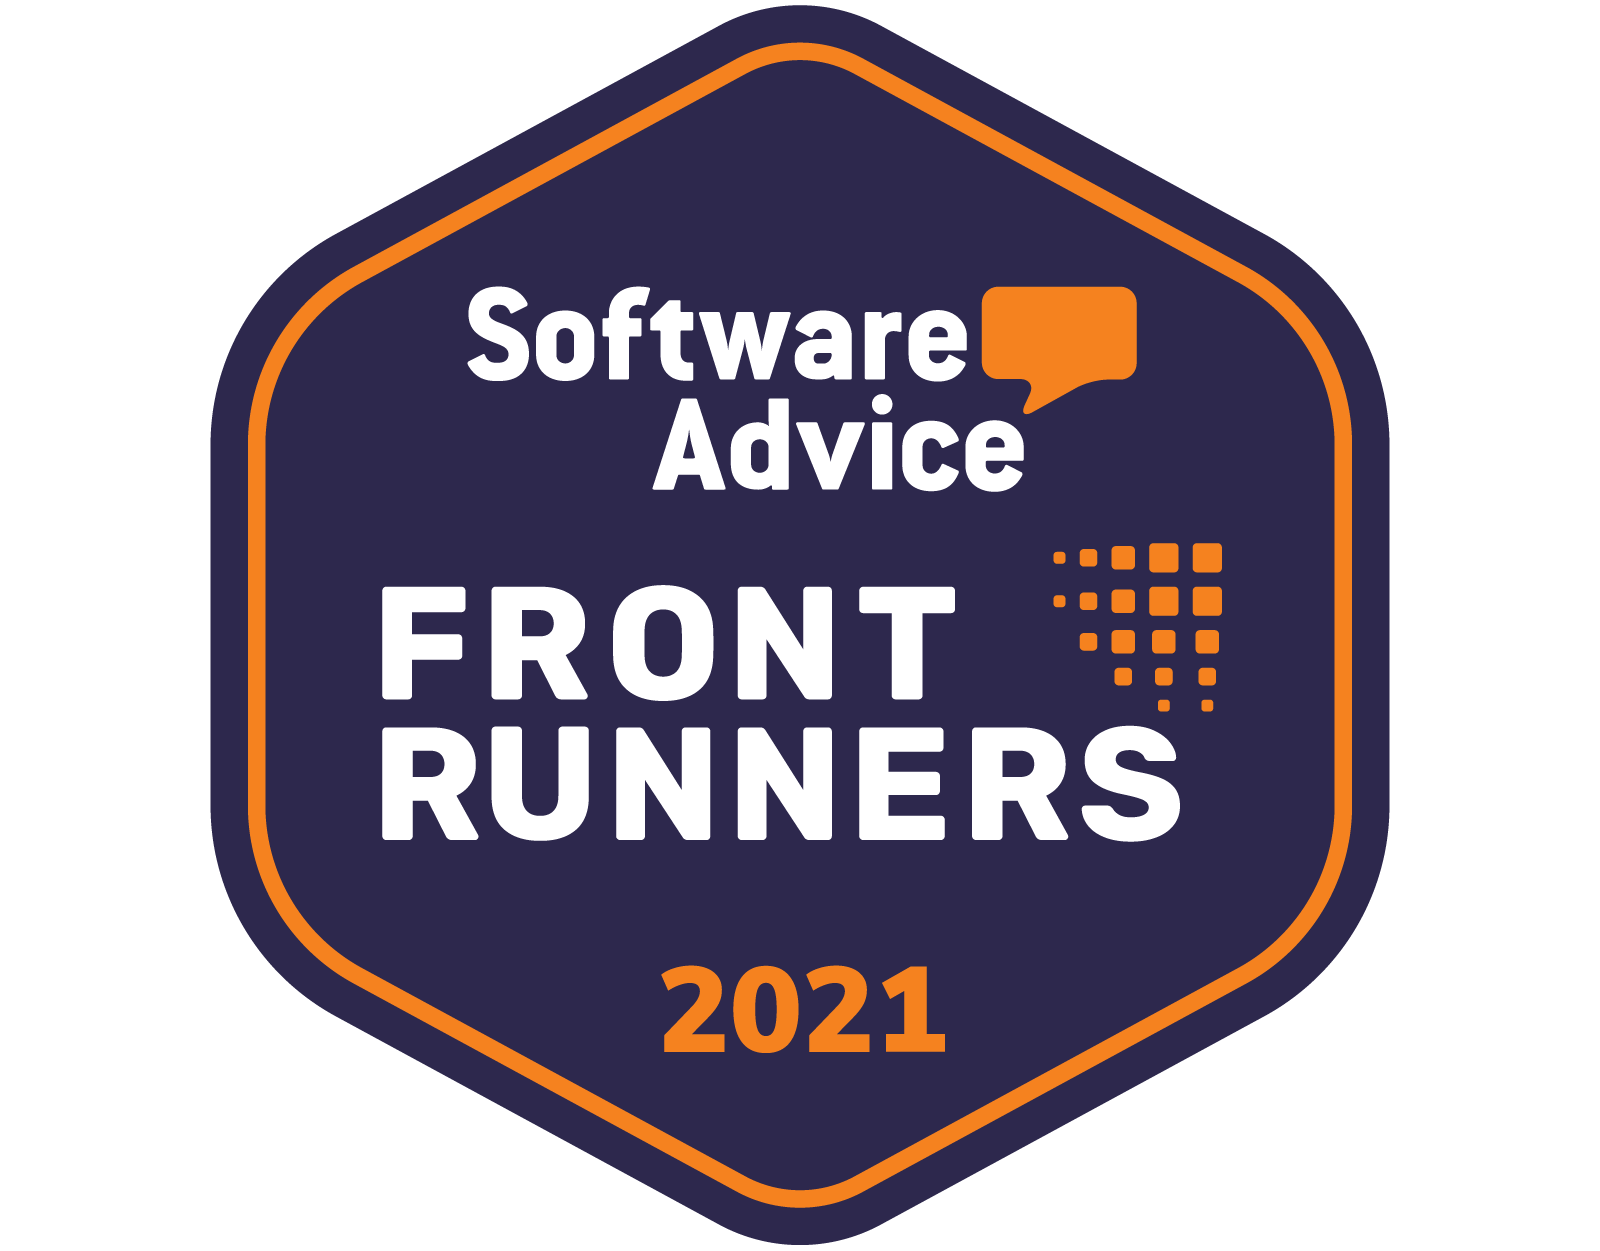 Software Advice Frontrunners for Call Center Feb-21